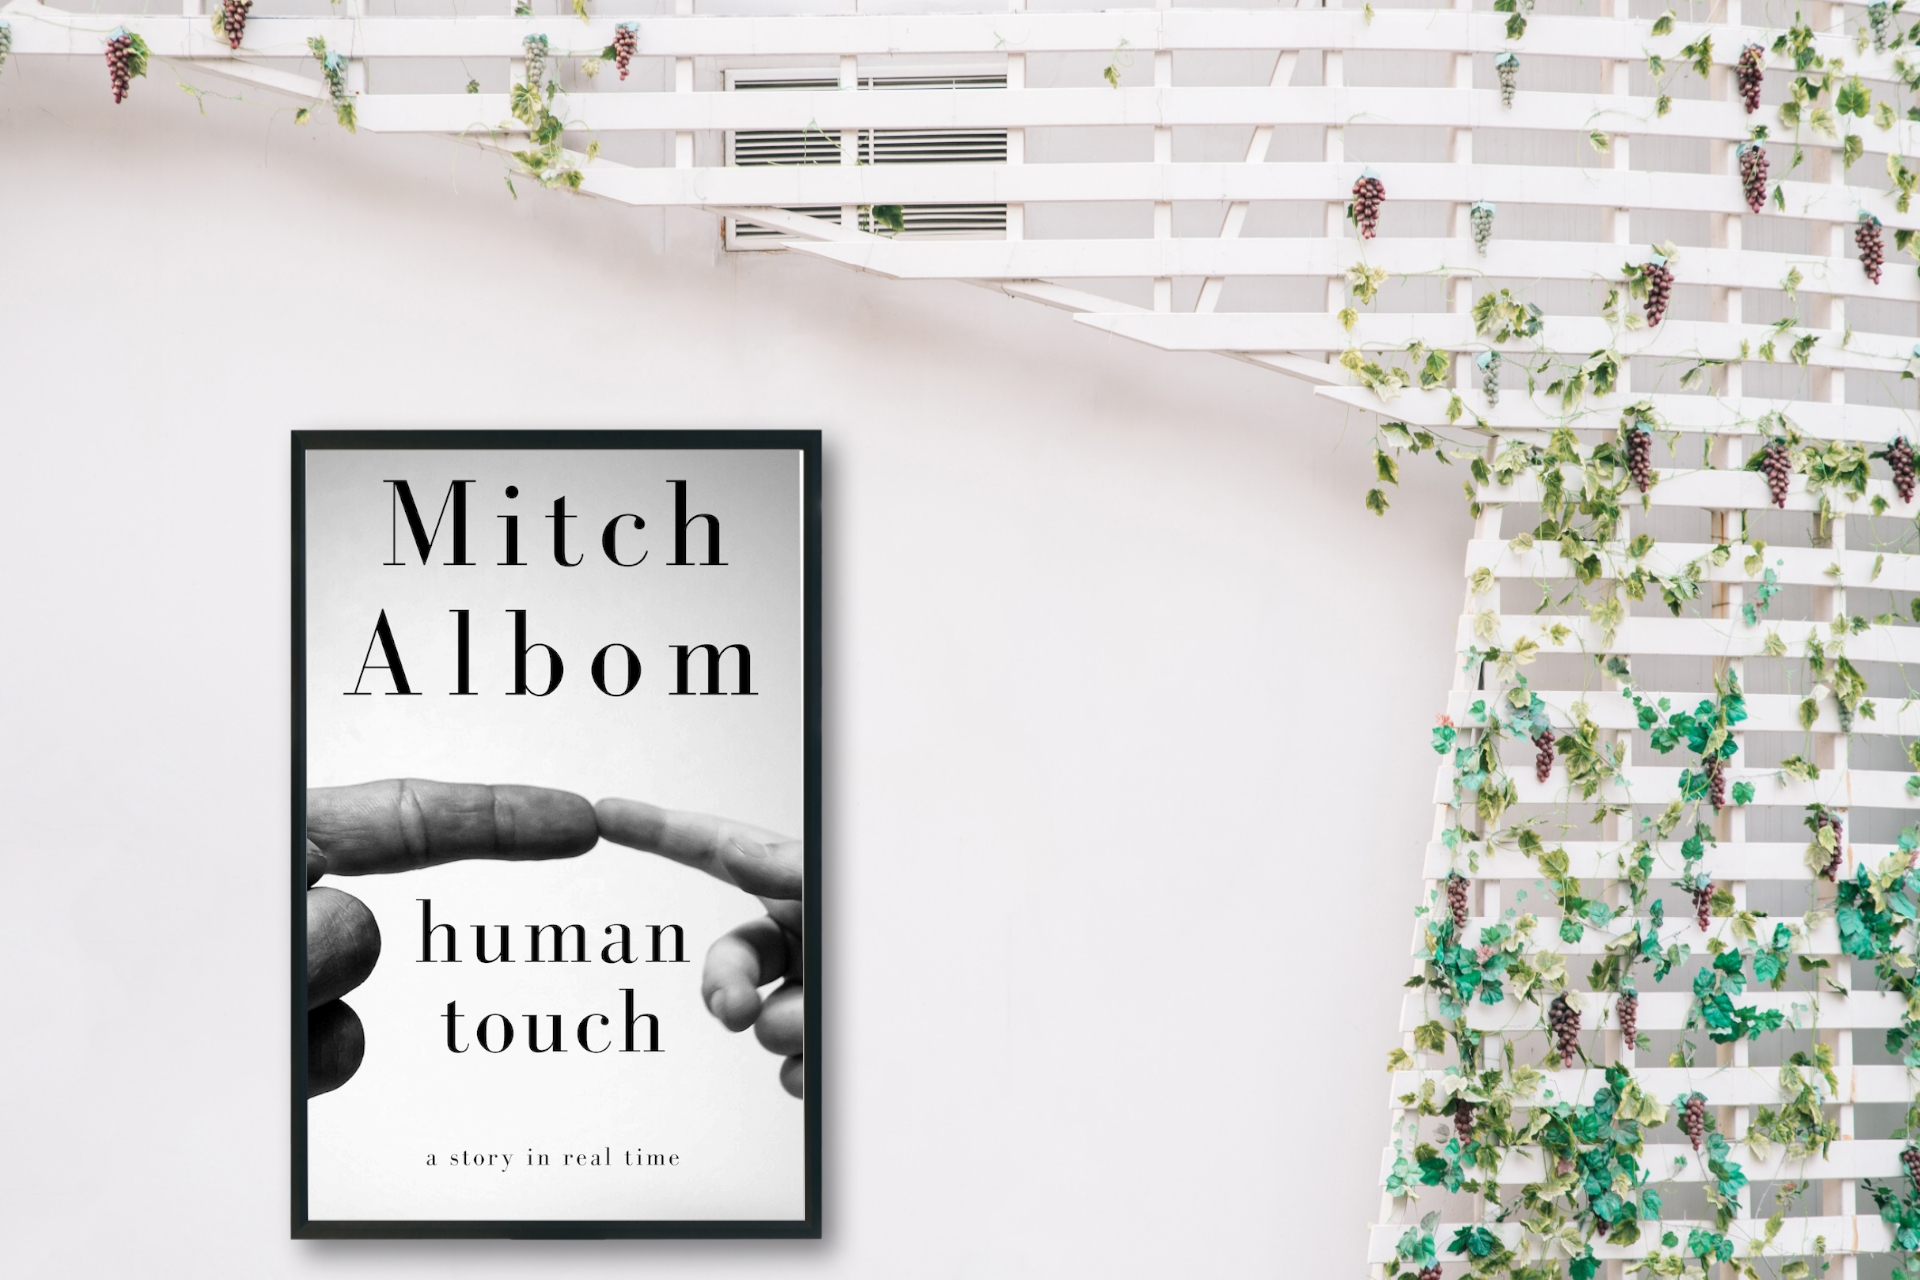 Mitch Albom's Human Touch Released in Free Serialization